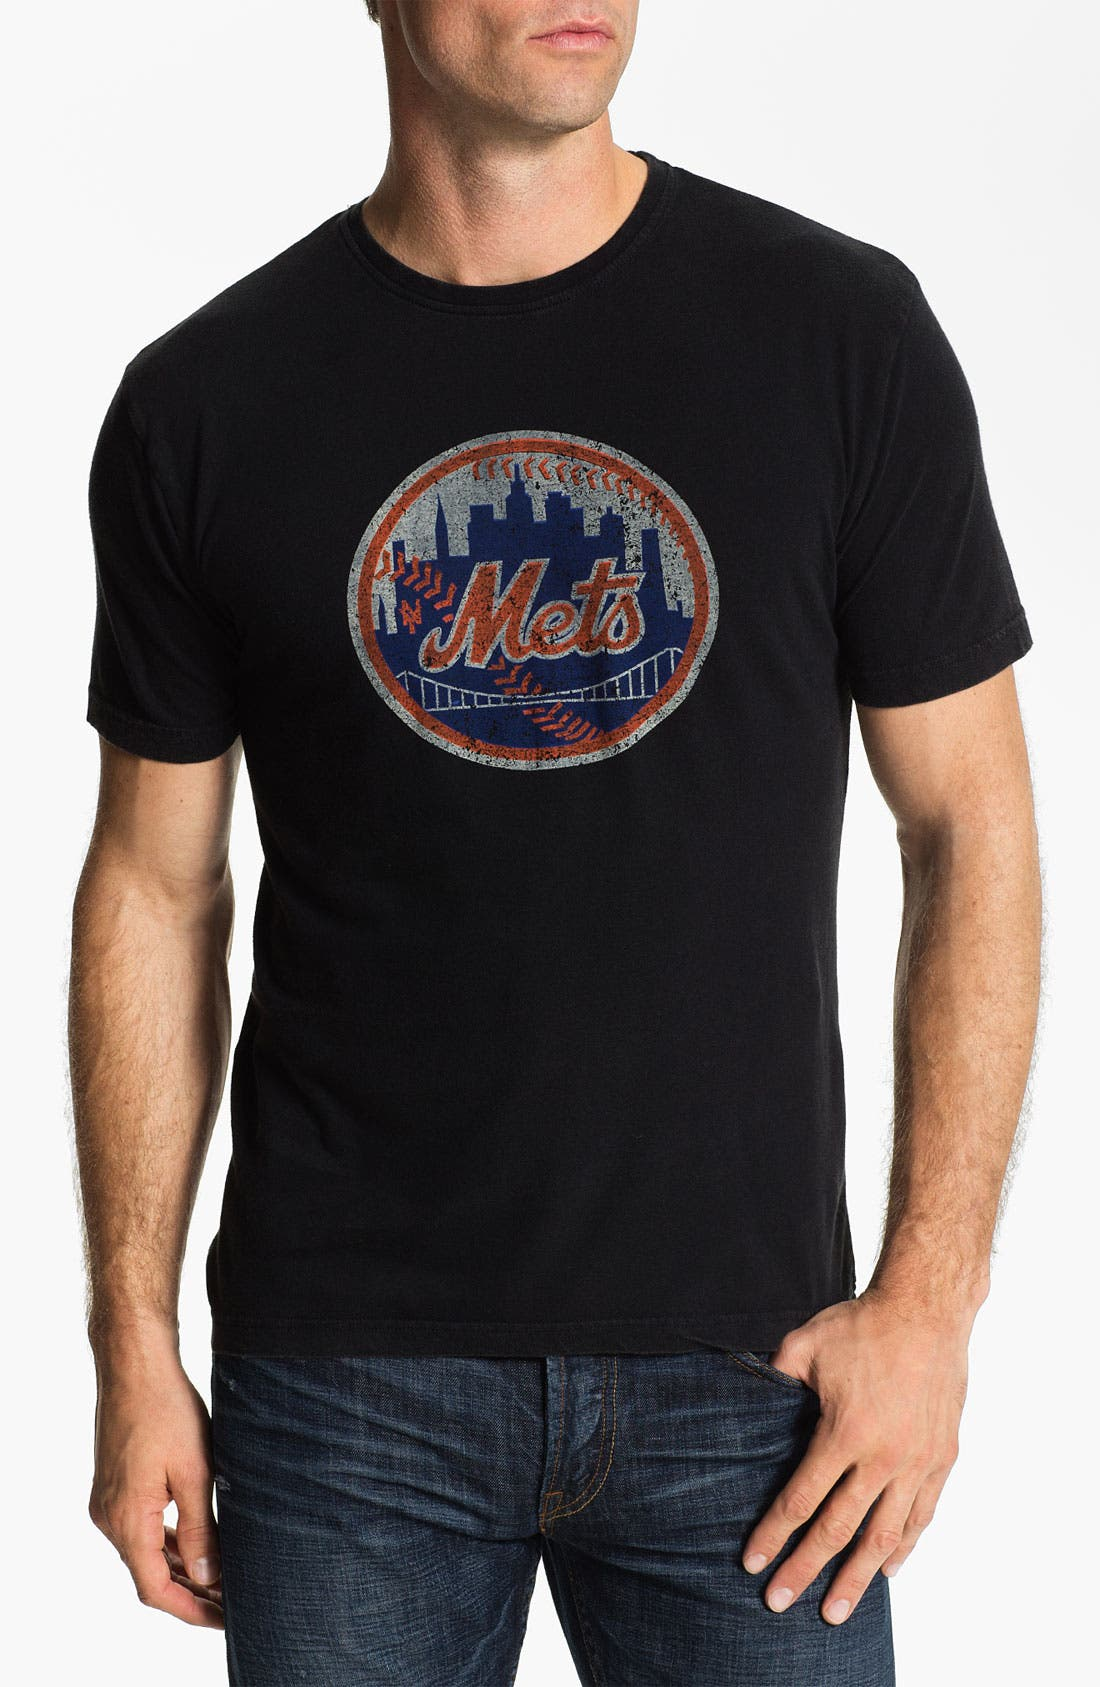 Alternate Image 1 Selected - Red Jacket 'New York Mets' Trim Fit T-Shirt (Men)